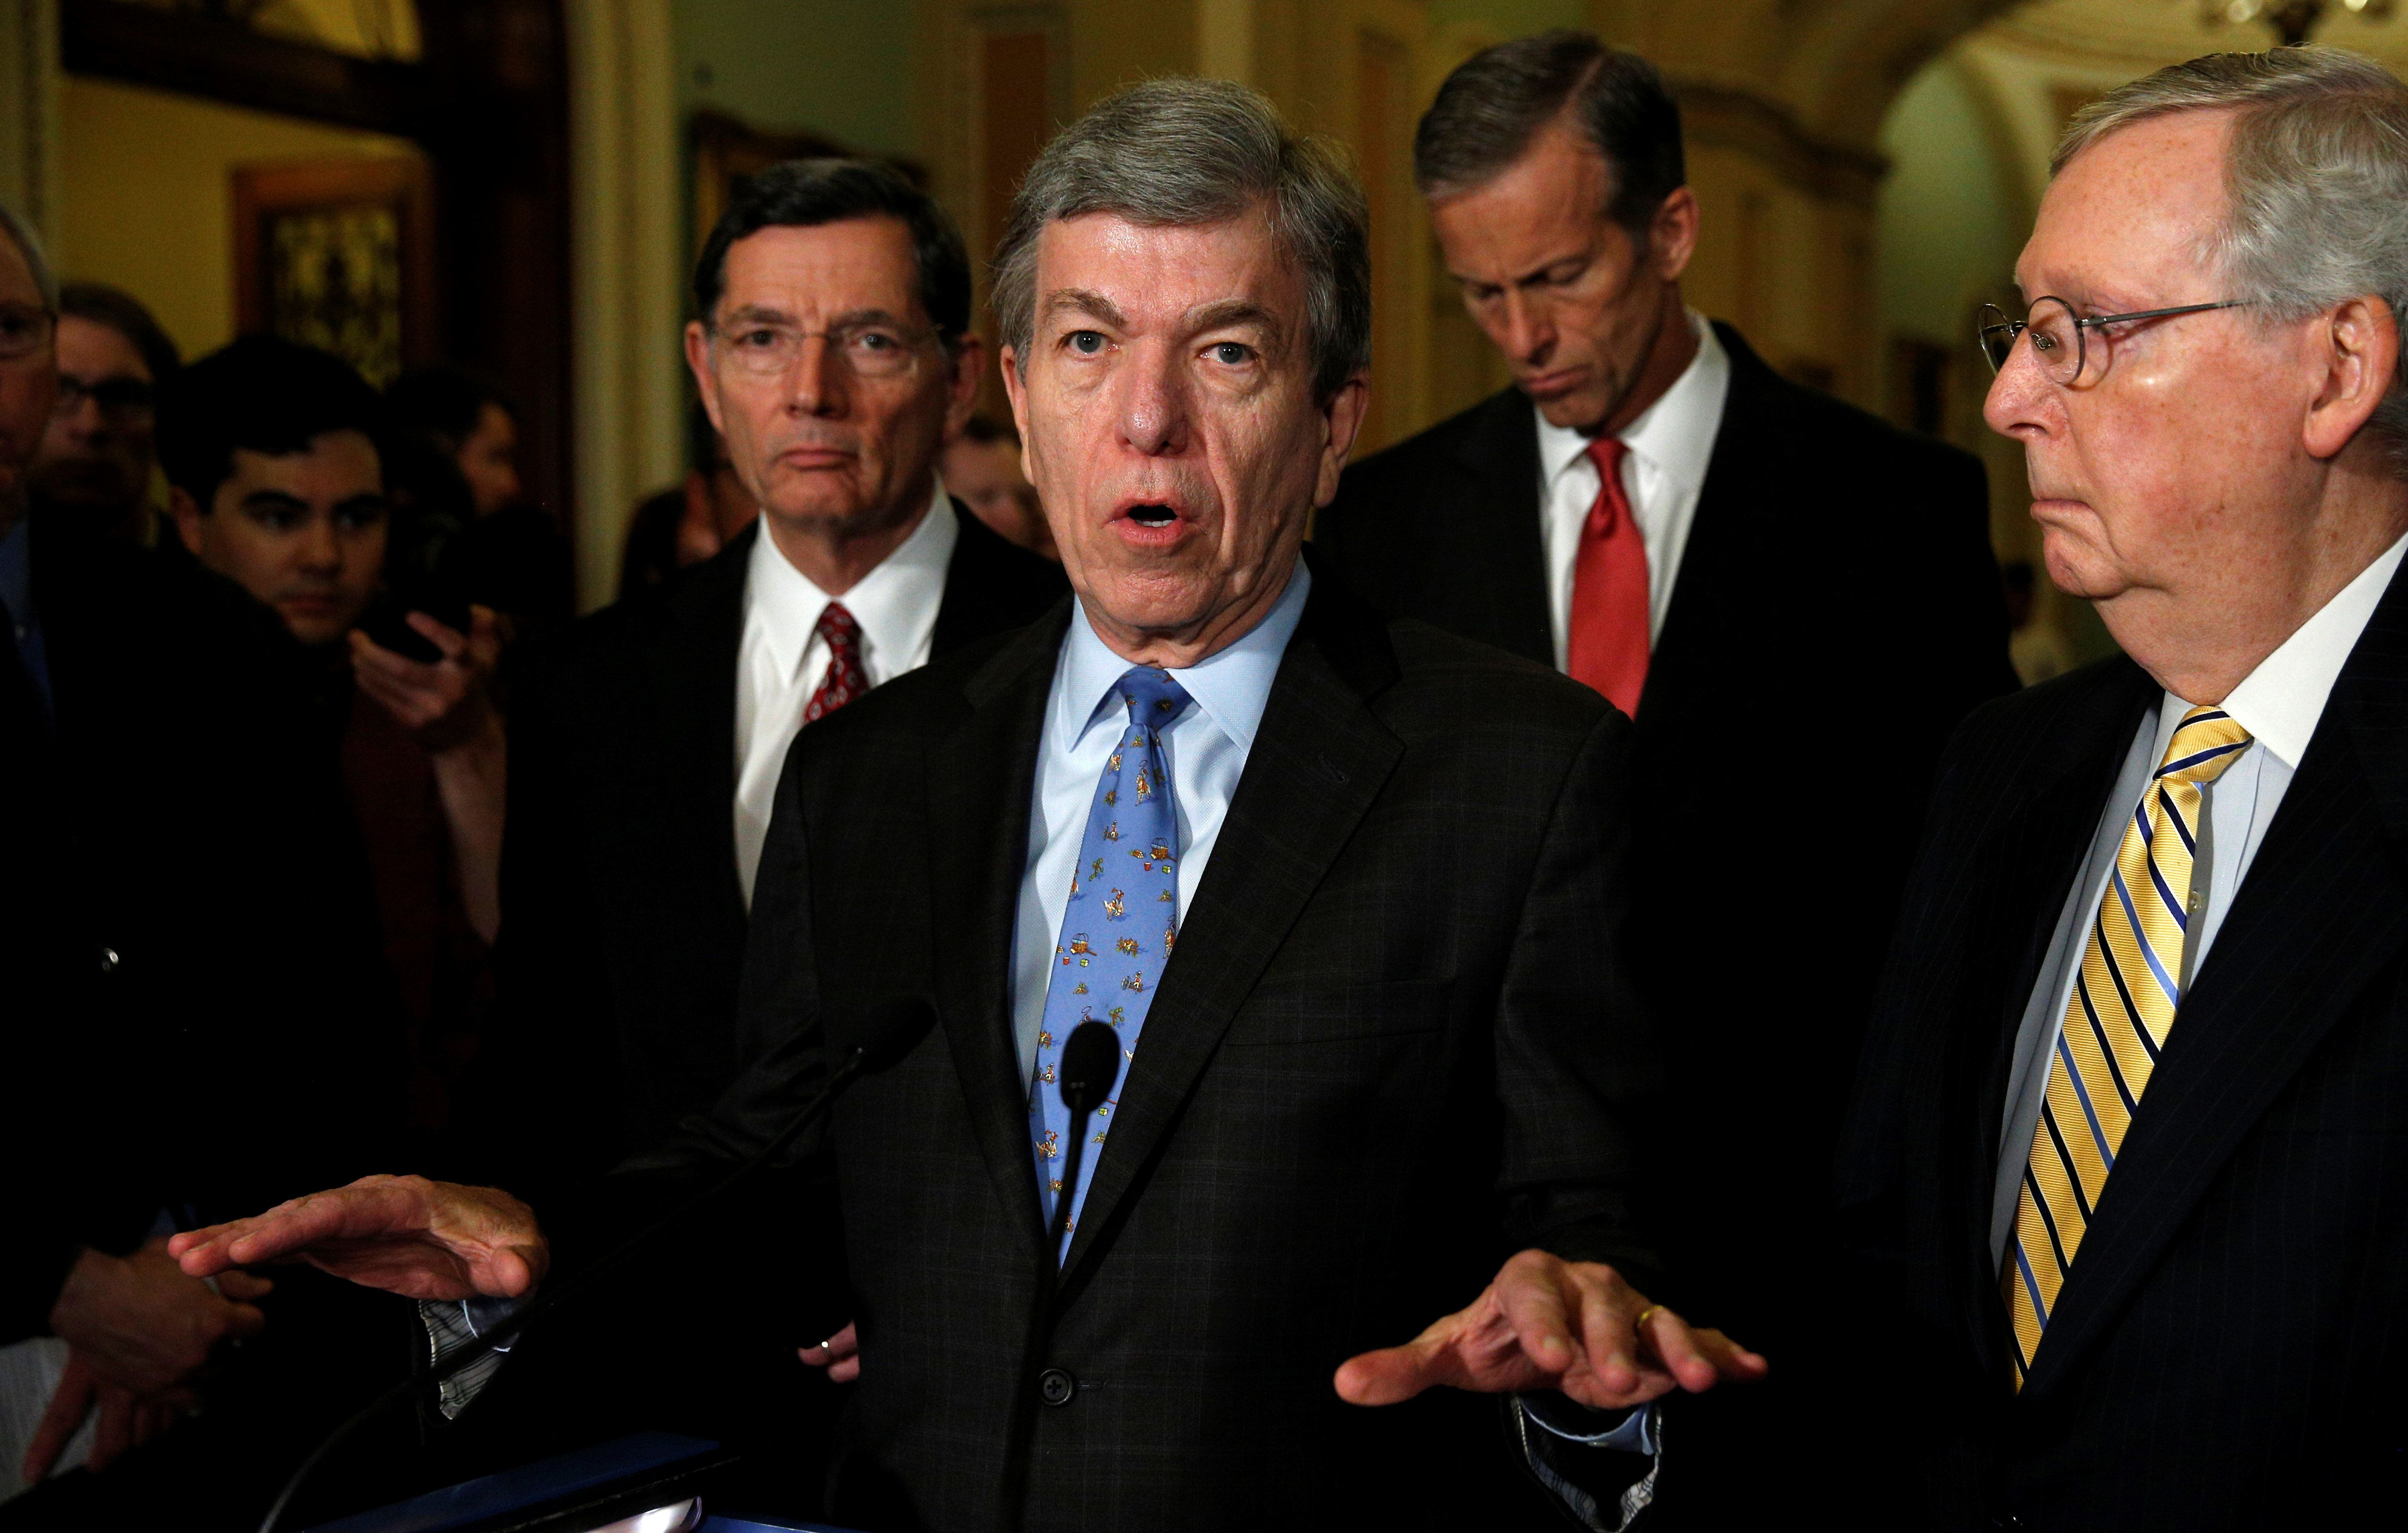 Senator Roy Blunt (R-MO) speaks to reporters in the U.S. Capitol in Washington, May 17, 2016. REUTERS/Kevin Lamarque